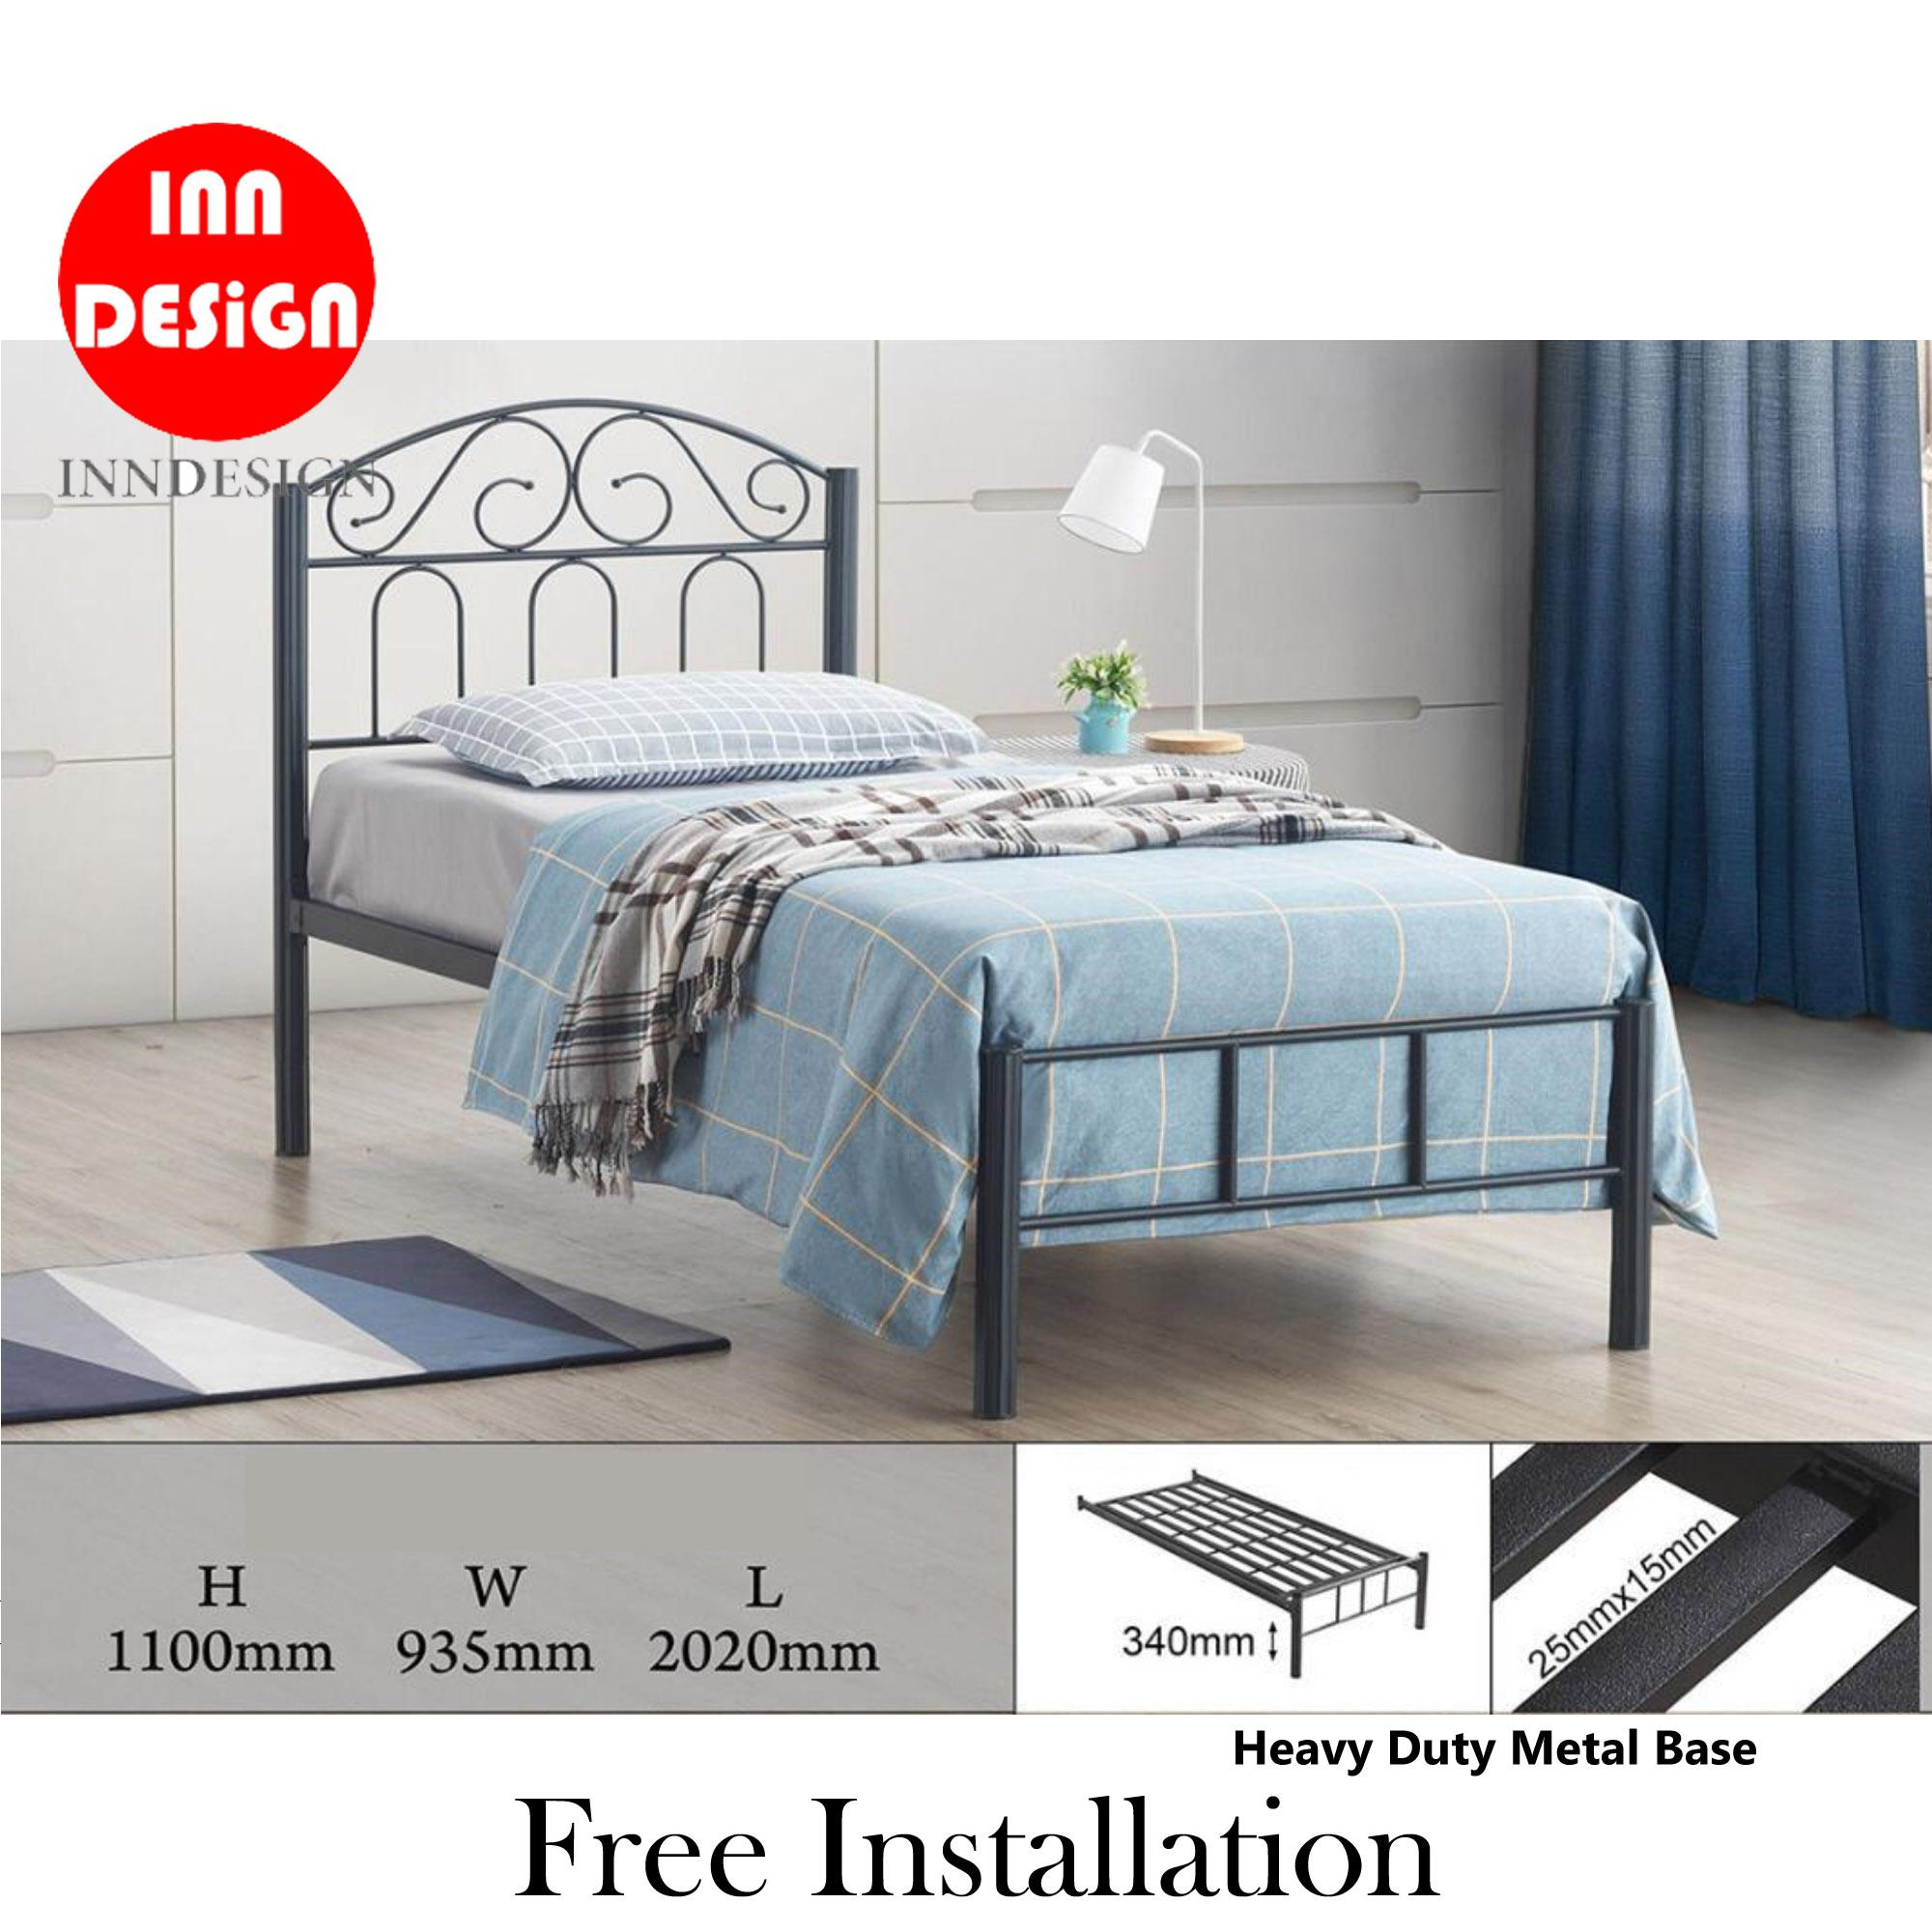 [NEW ARRIVAL] [6 Months Warranty]  Emi II Single Heavy Duty Metal Bedframe / Bed (Free Delivery and Installation)